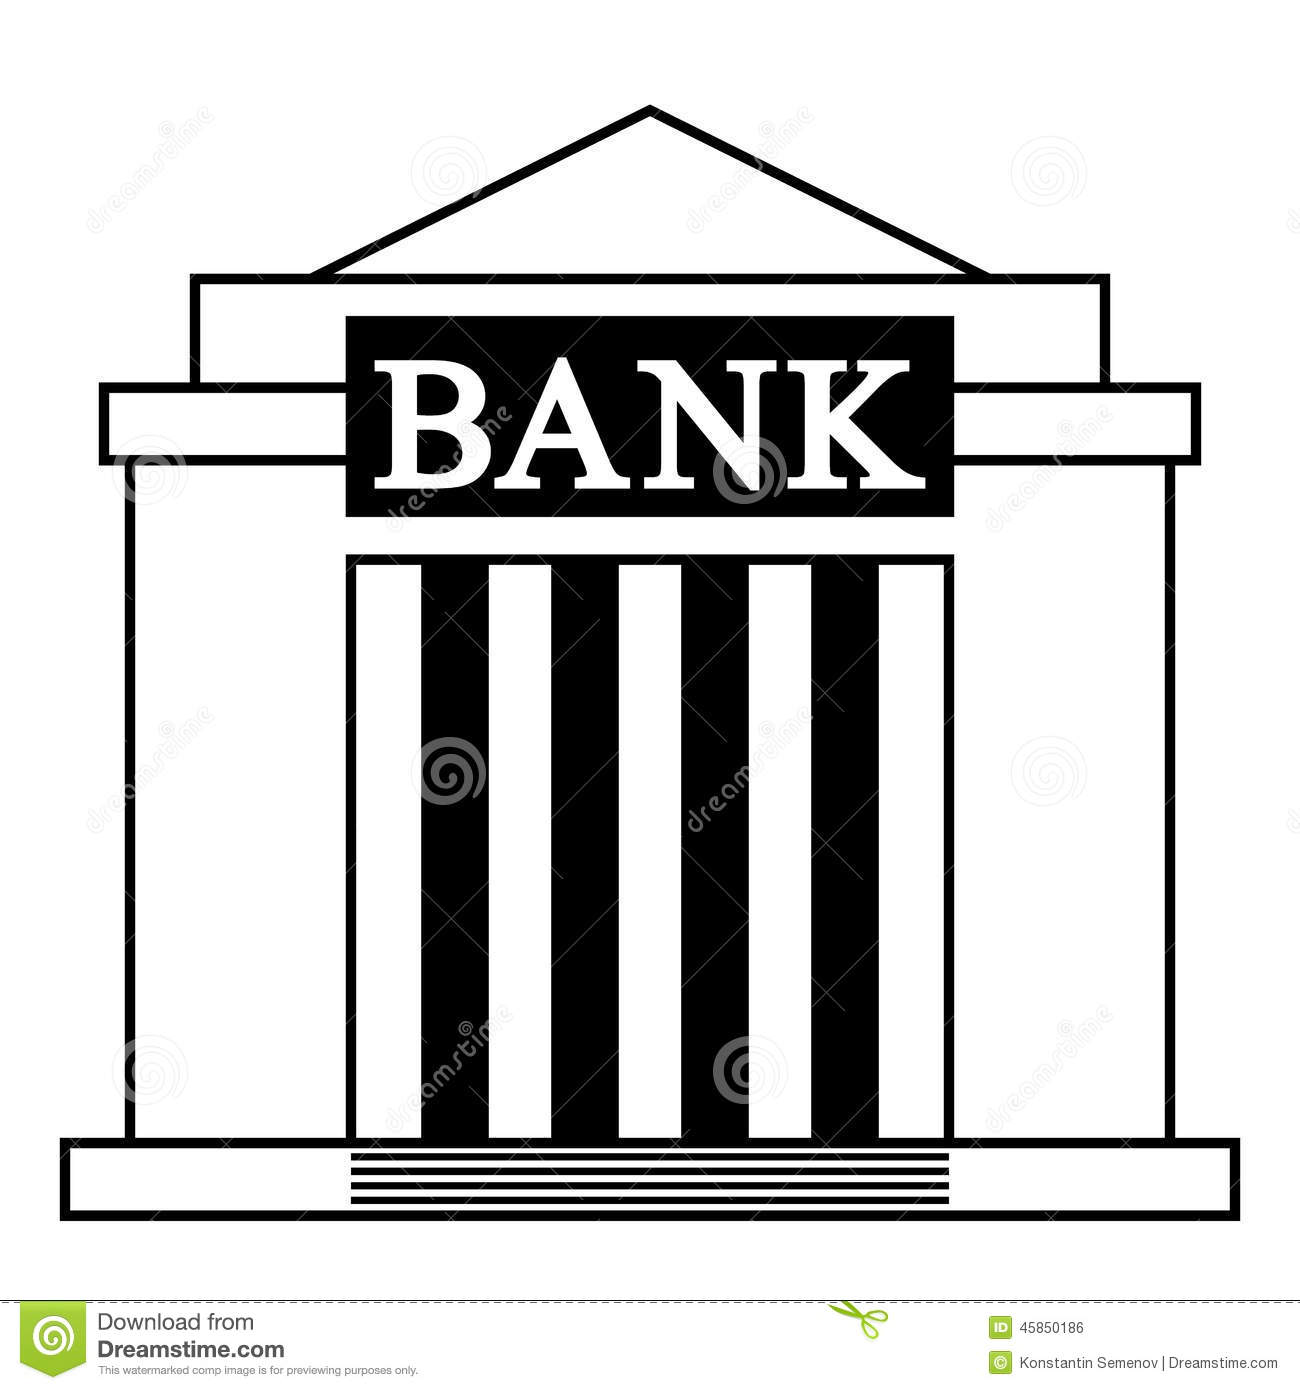 Bank icon stock vector. Illustration of depository ...